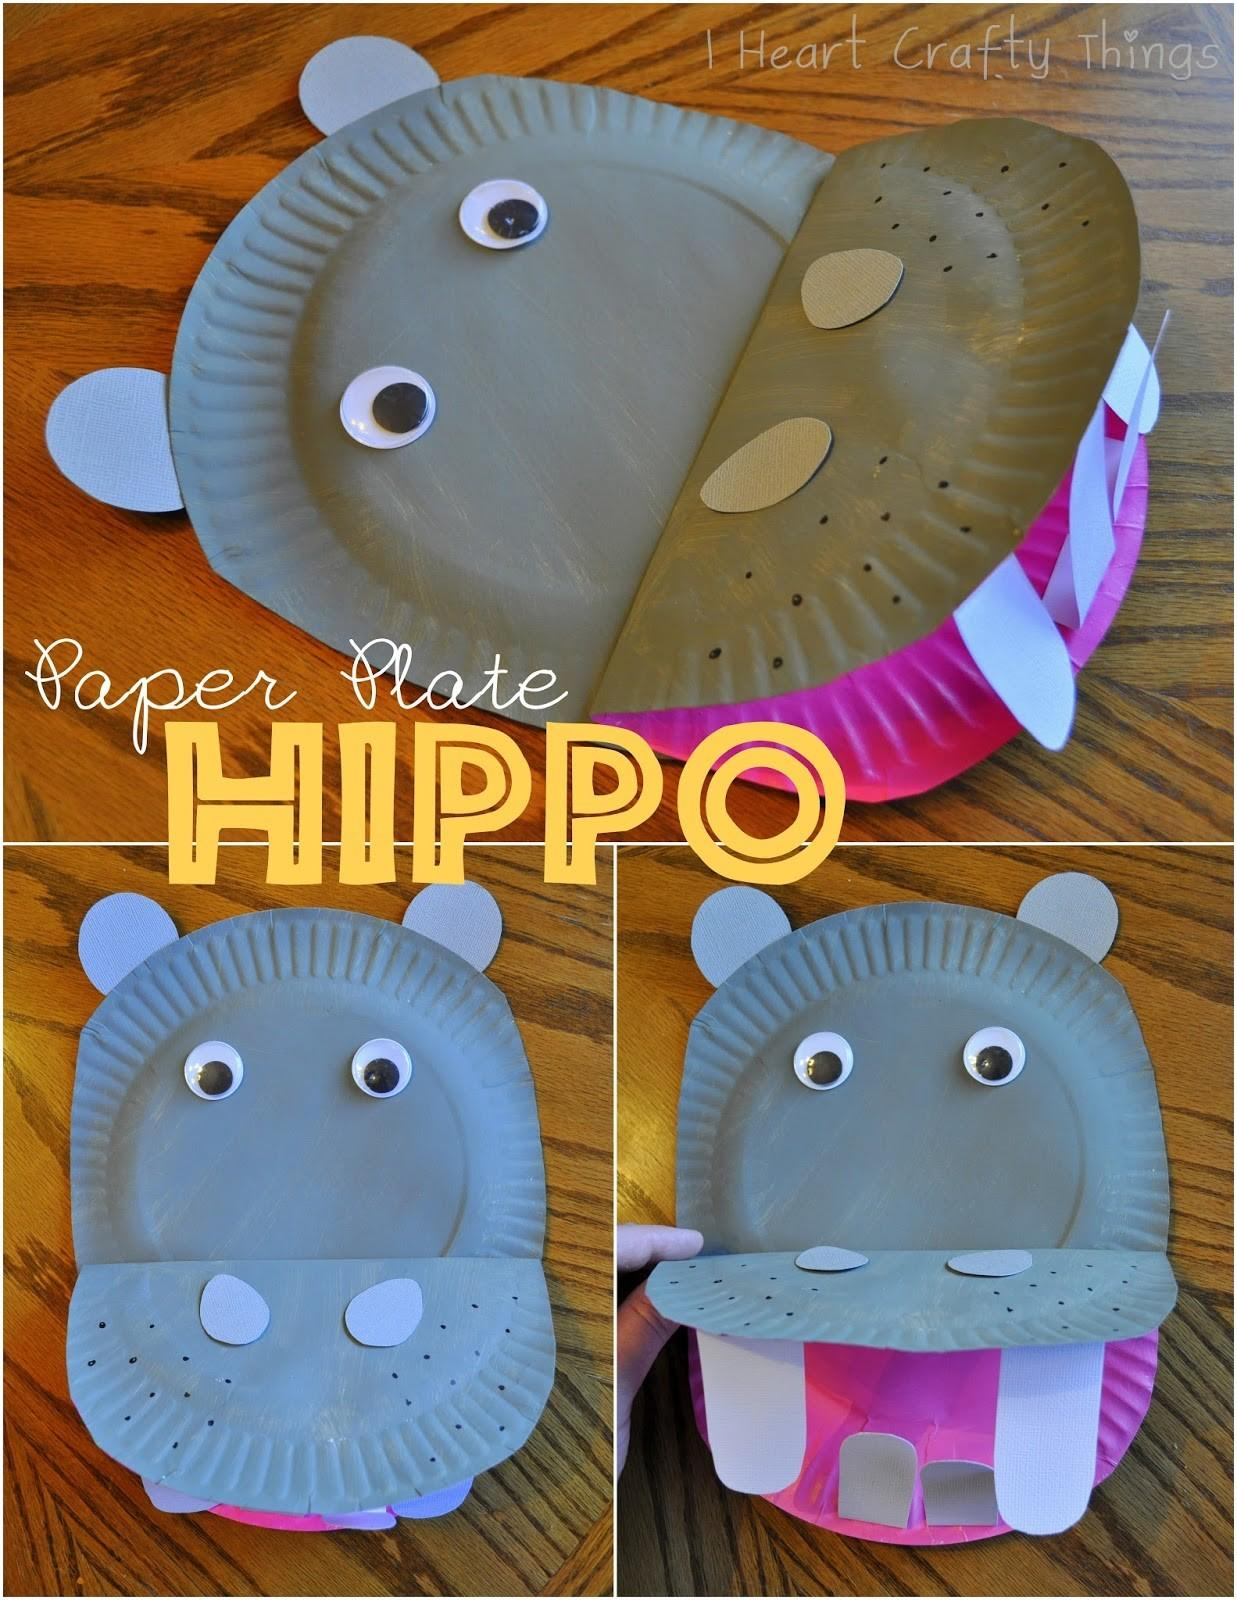 Paper Plate Hippopotamus Heart Crafty Things